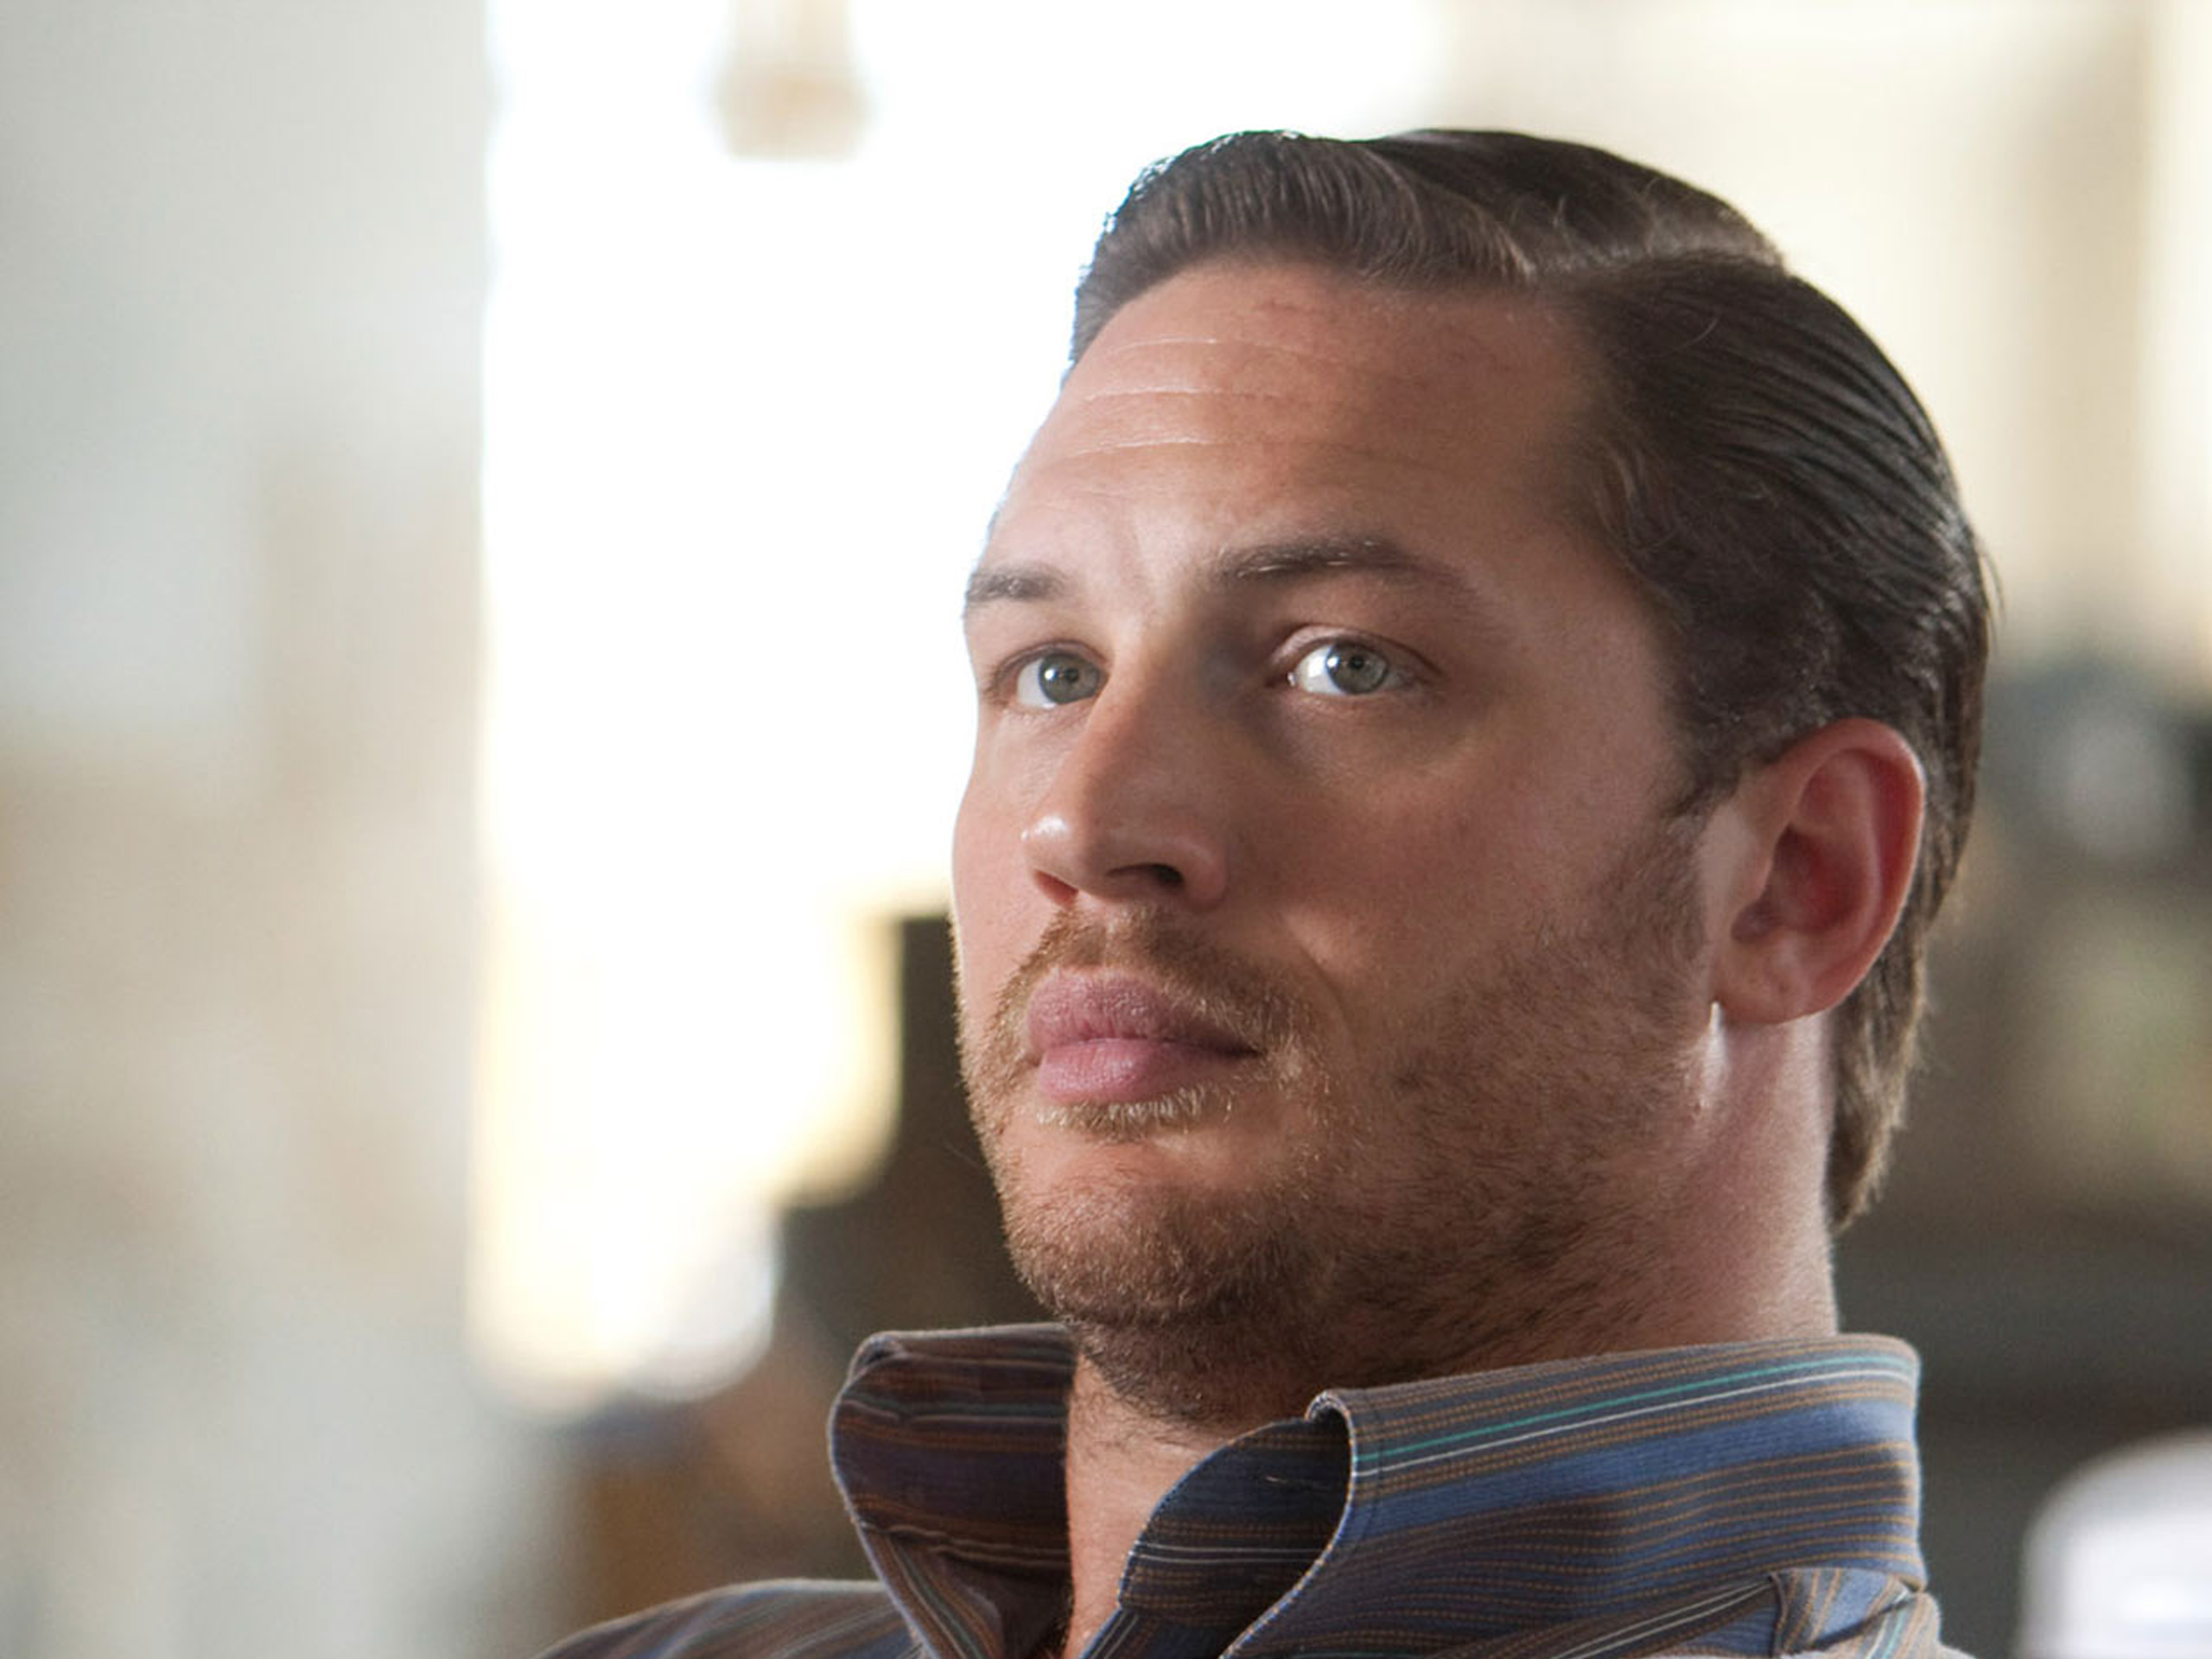 Movie News: Tom Hardy considered for role of Elton John in musical biopic